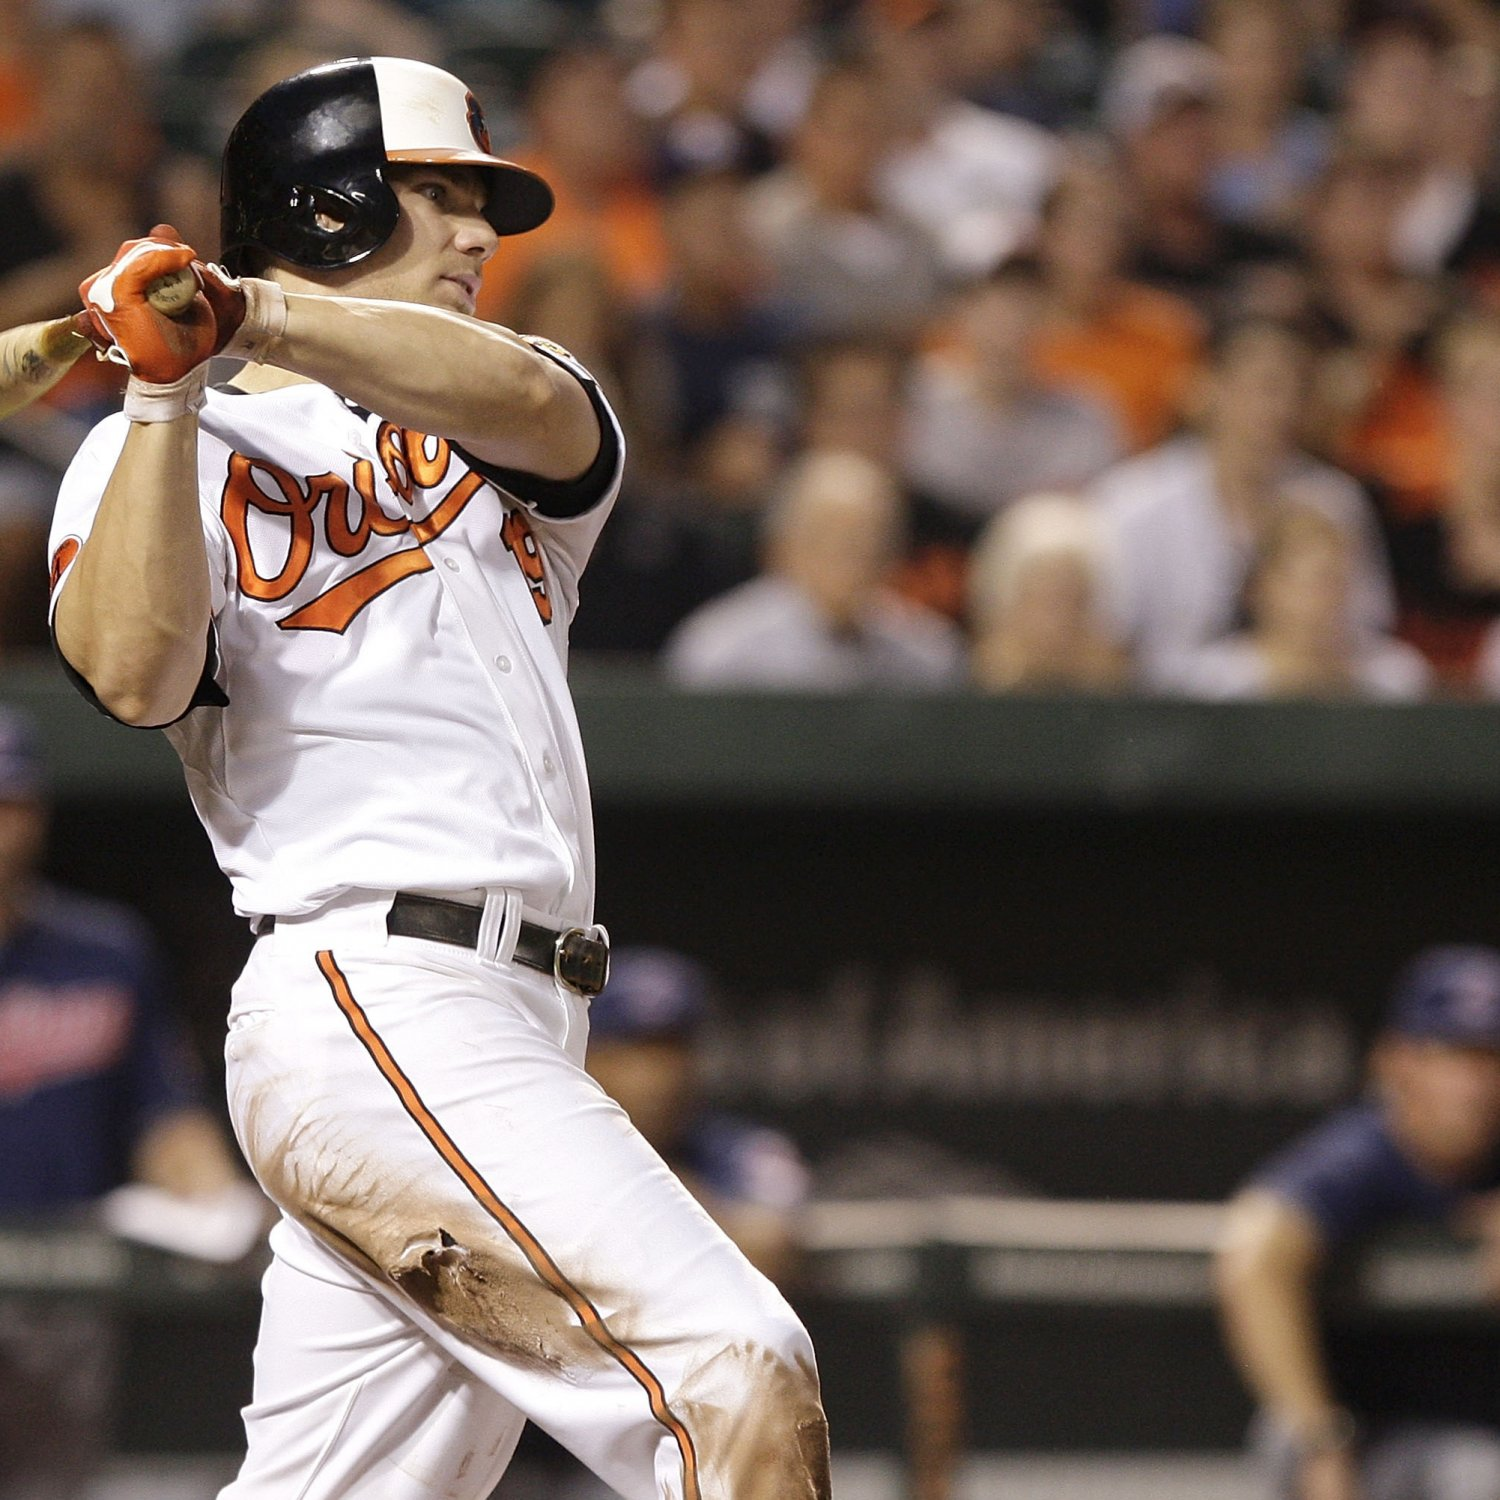 MLB playoffs: What to watch for before the postseason ...